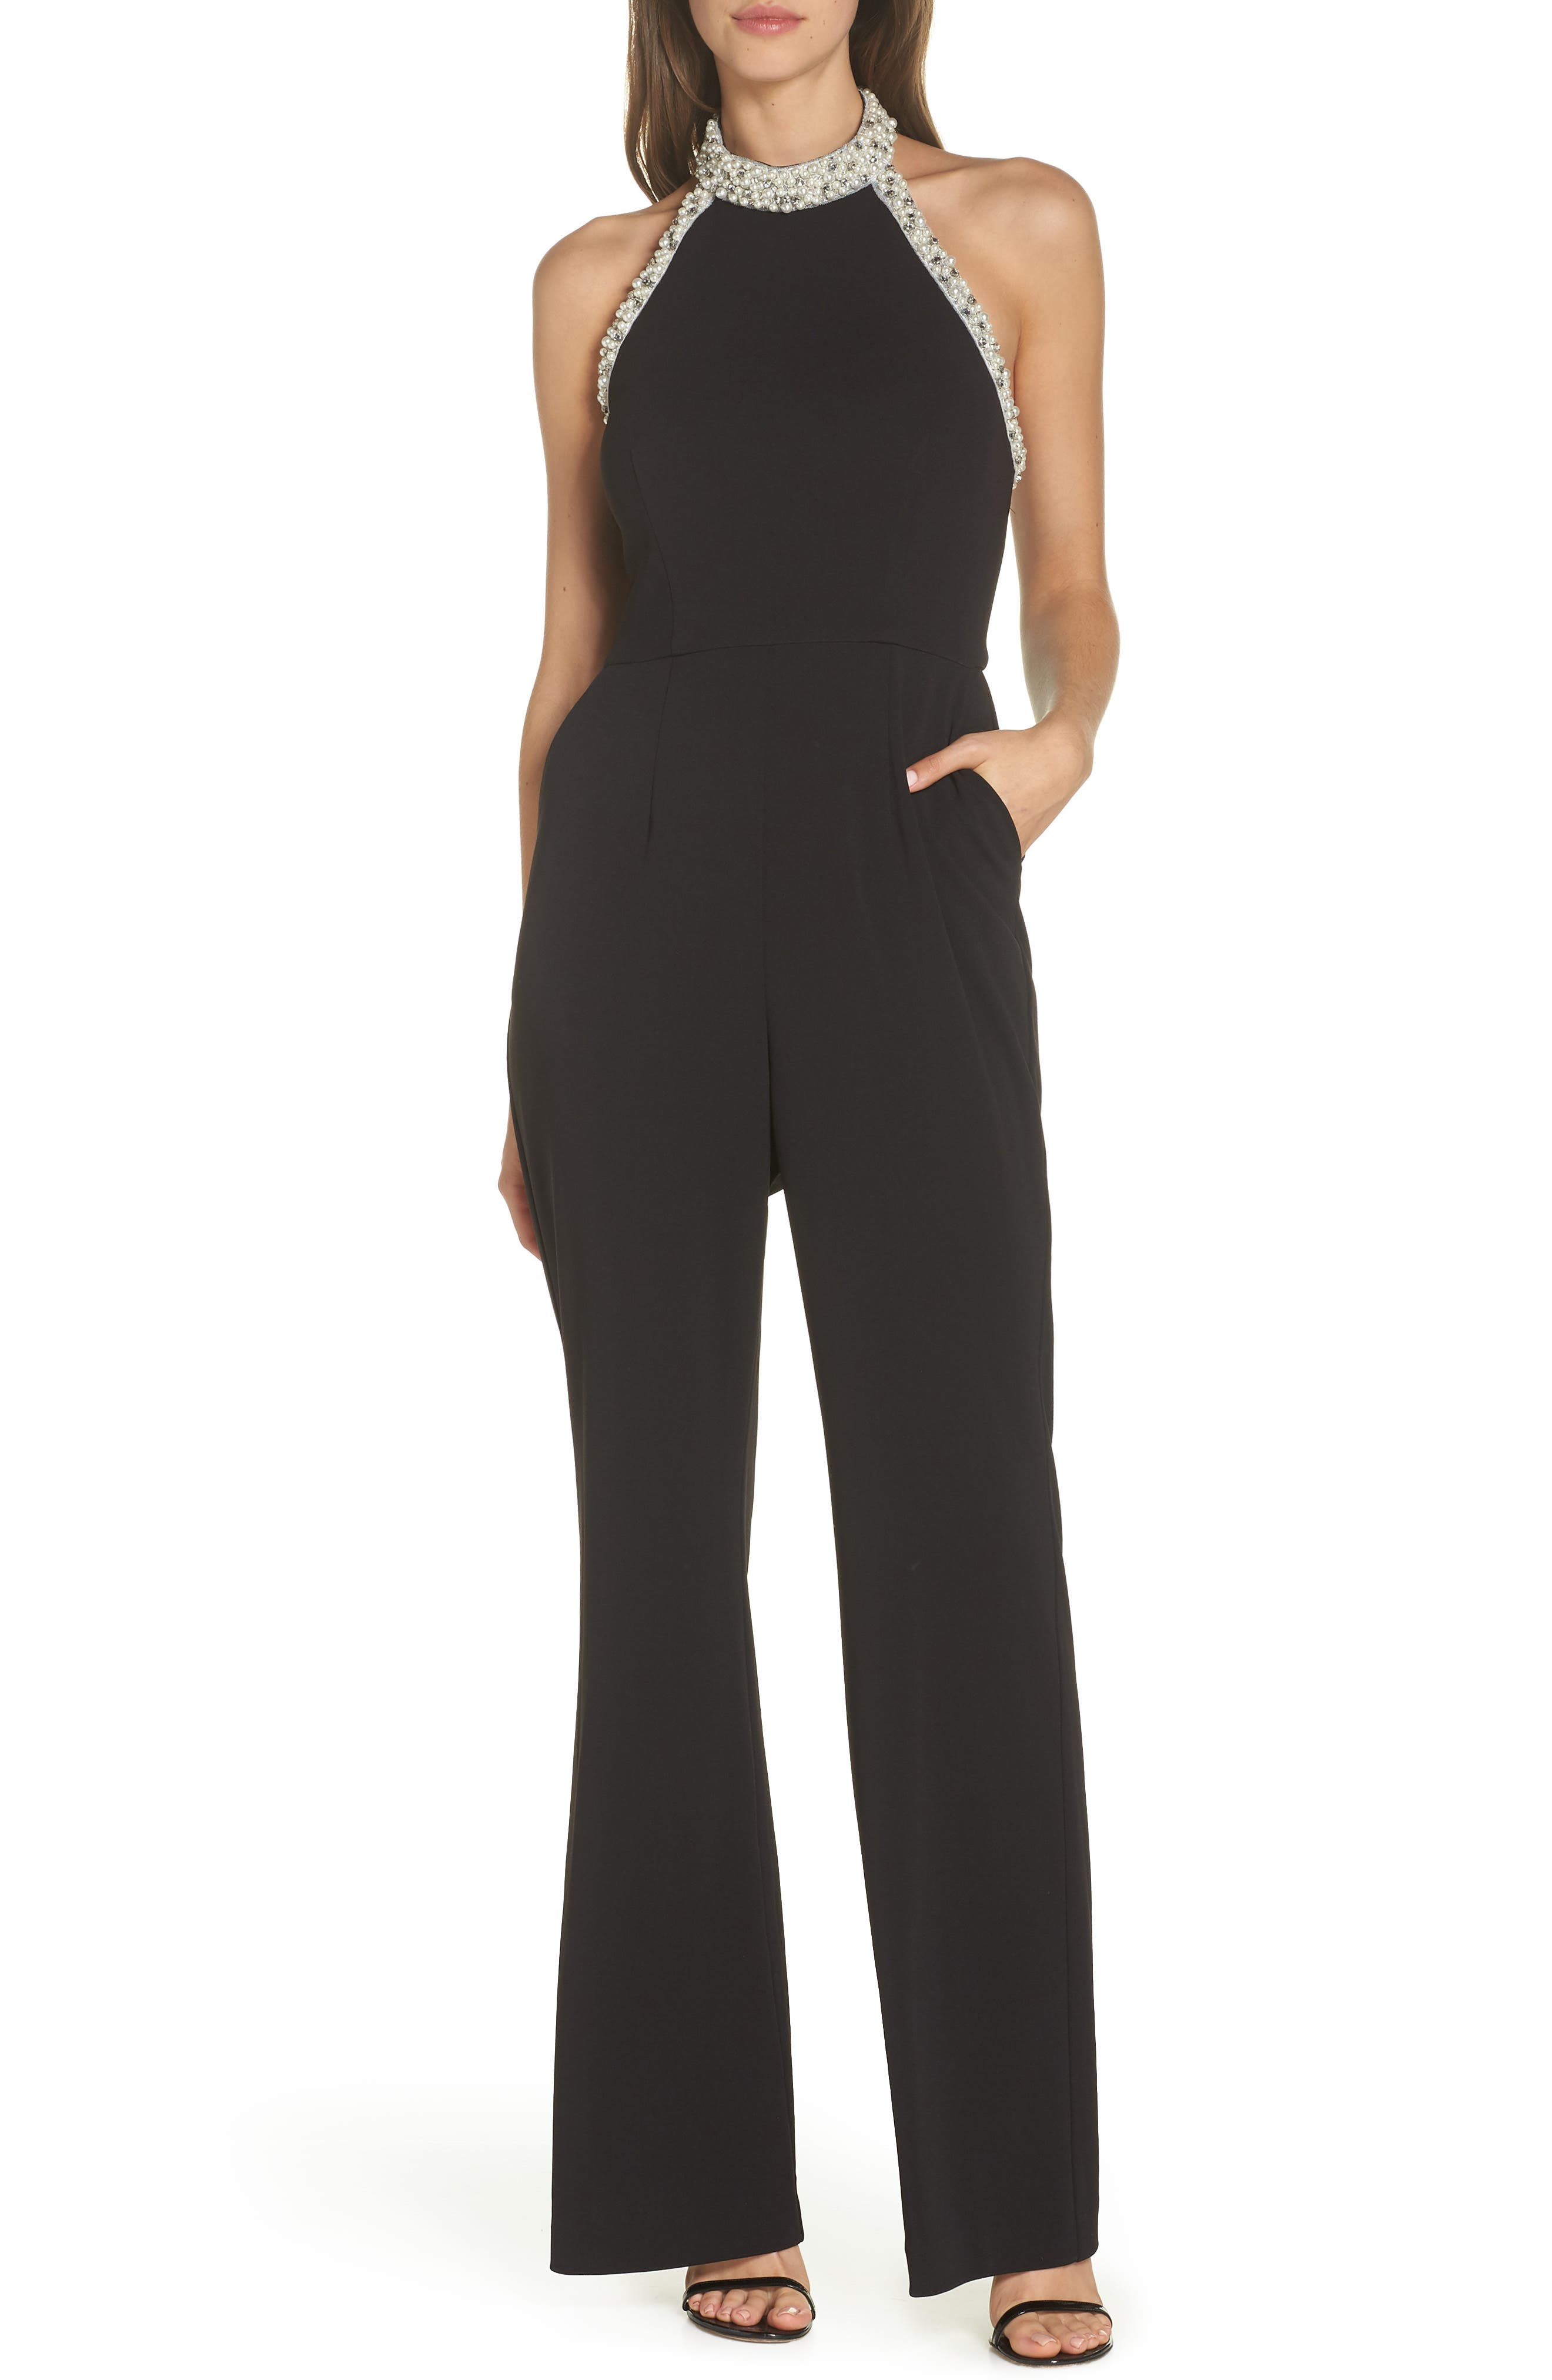 70s Prom, Formal, Evening, Party Dresses Womens Adrianna Papell Halter Crepe Jumpsuit Size 16 - Black $229.00 AT vintagedancer.com